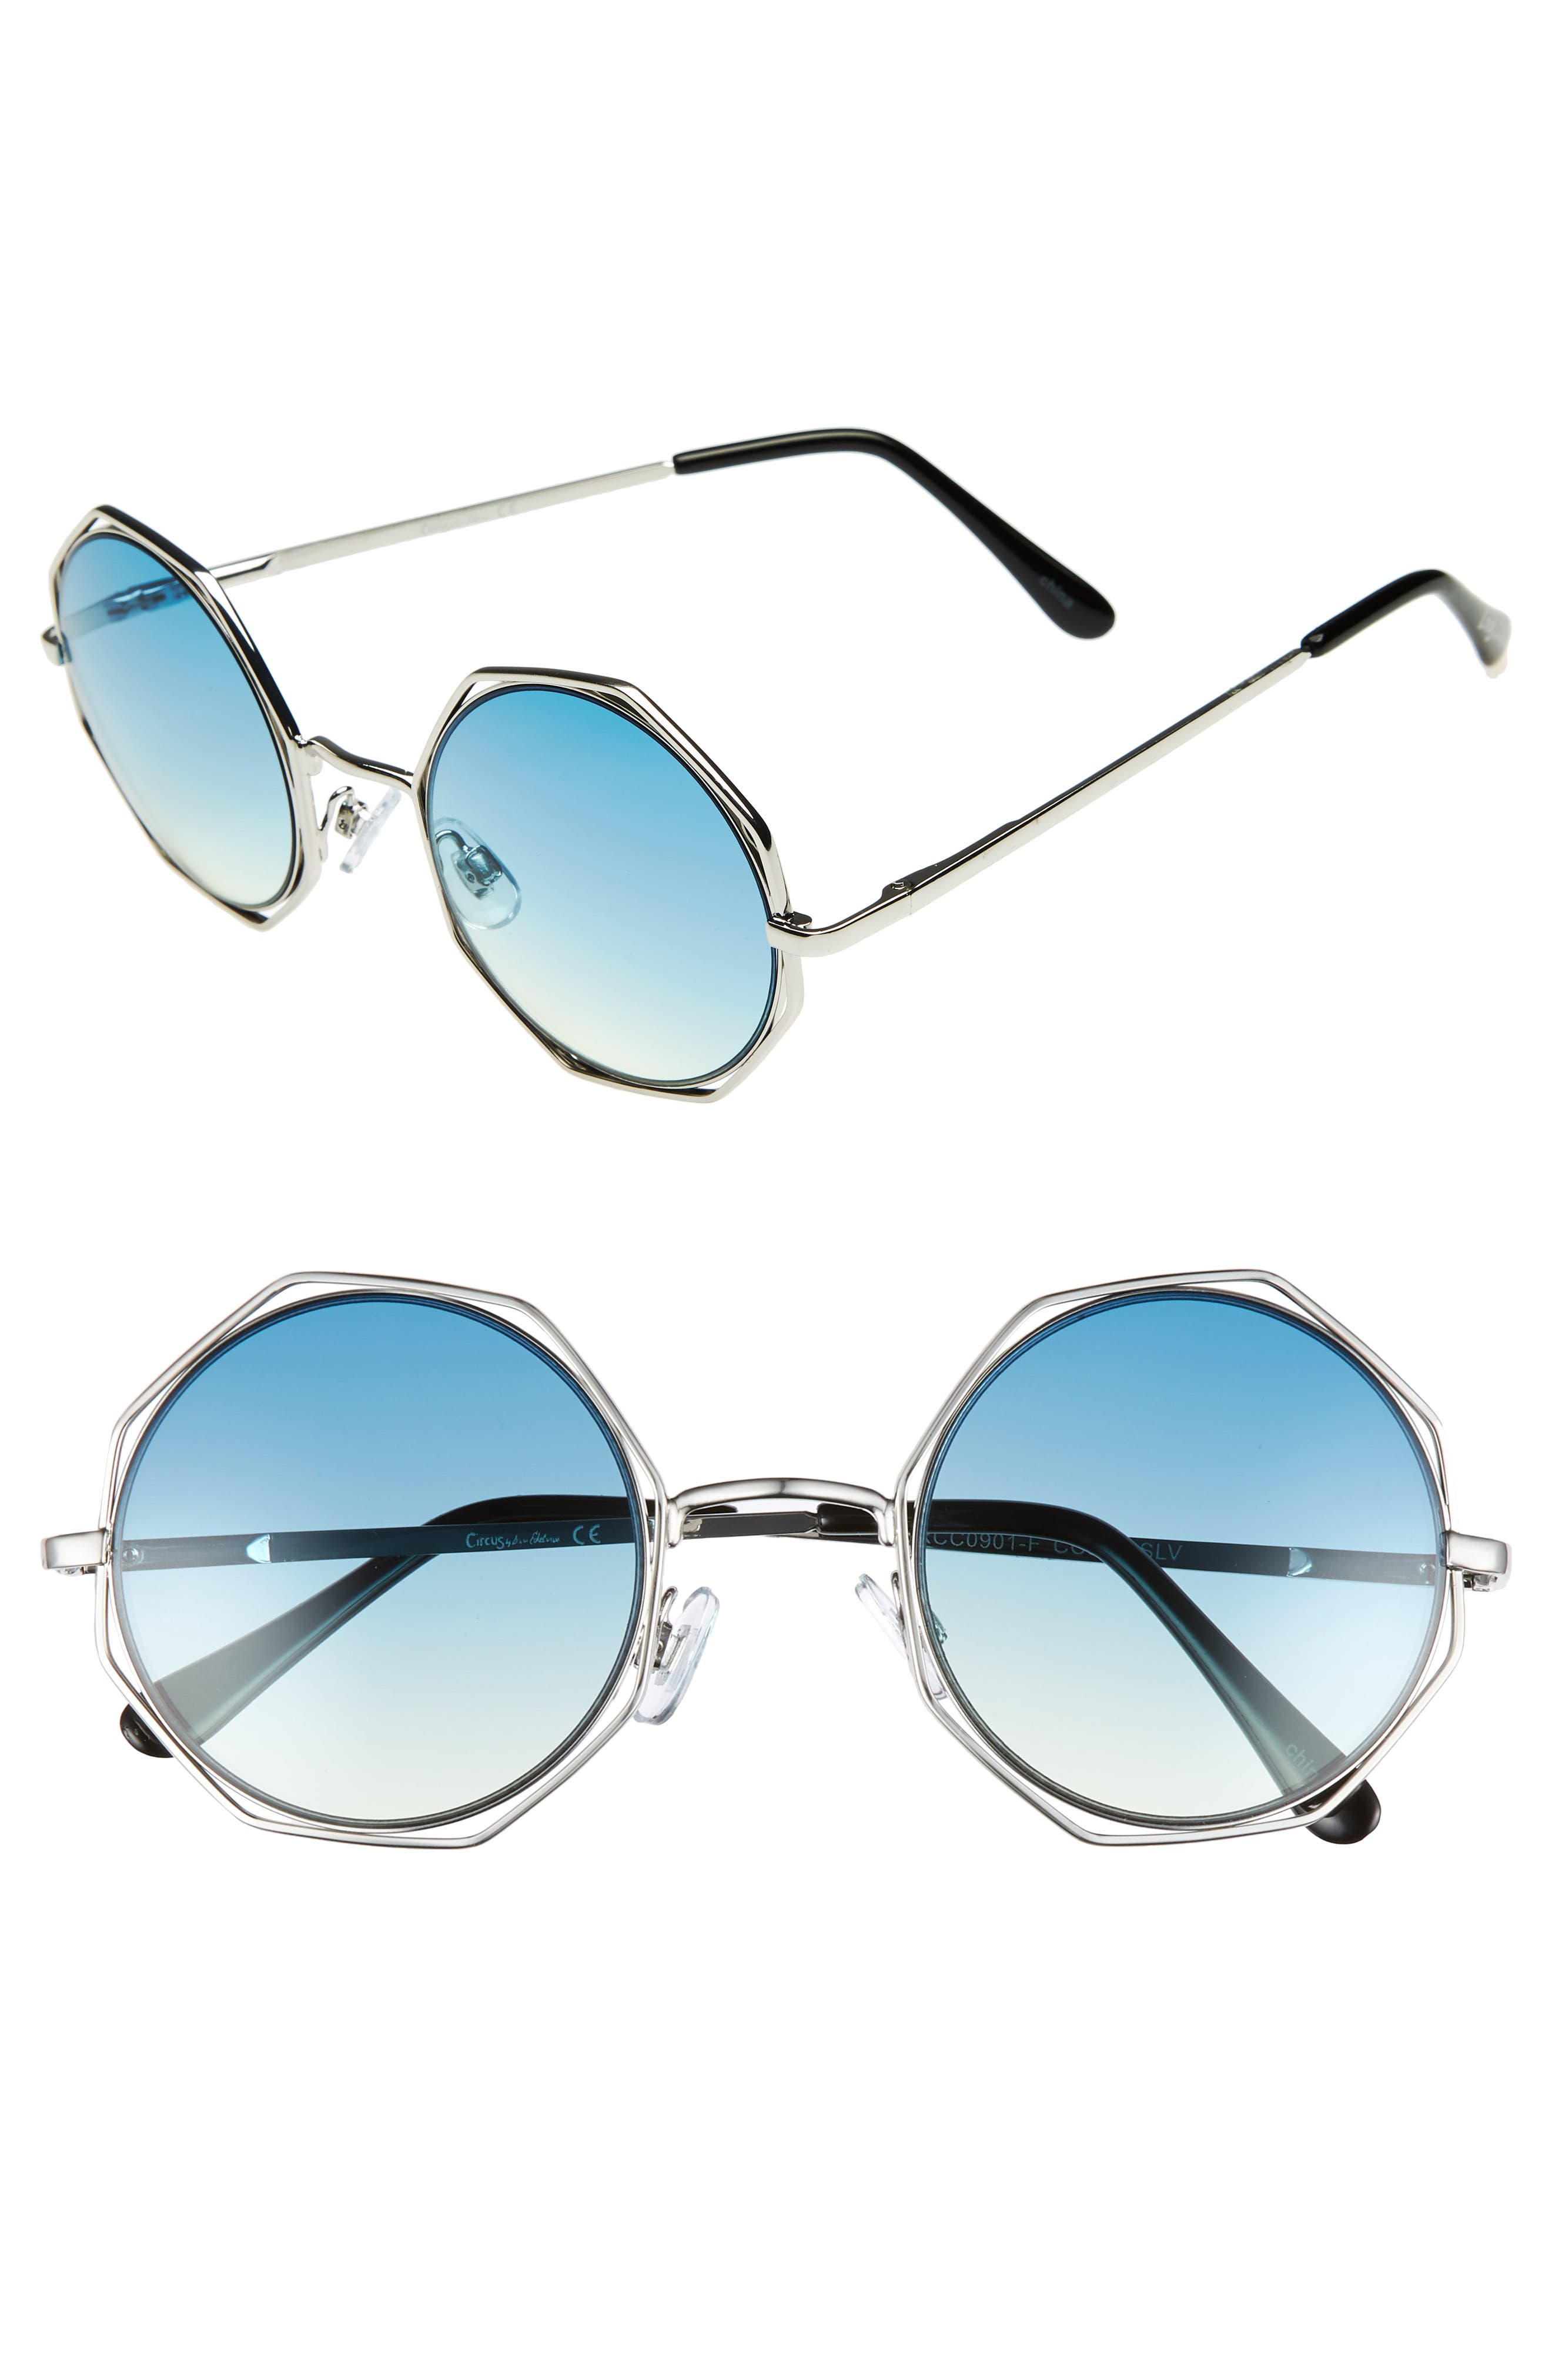 50mm Round Sunglasses,                             Main thumbnail 1, color,                             Silver